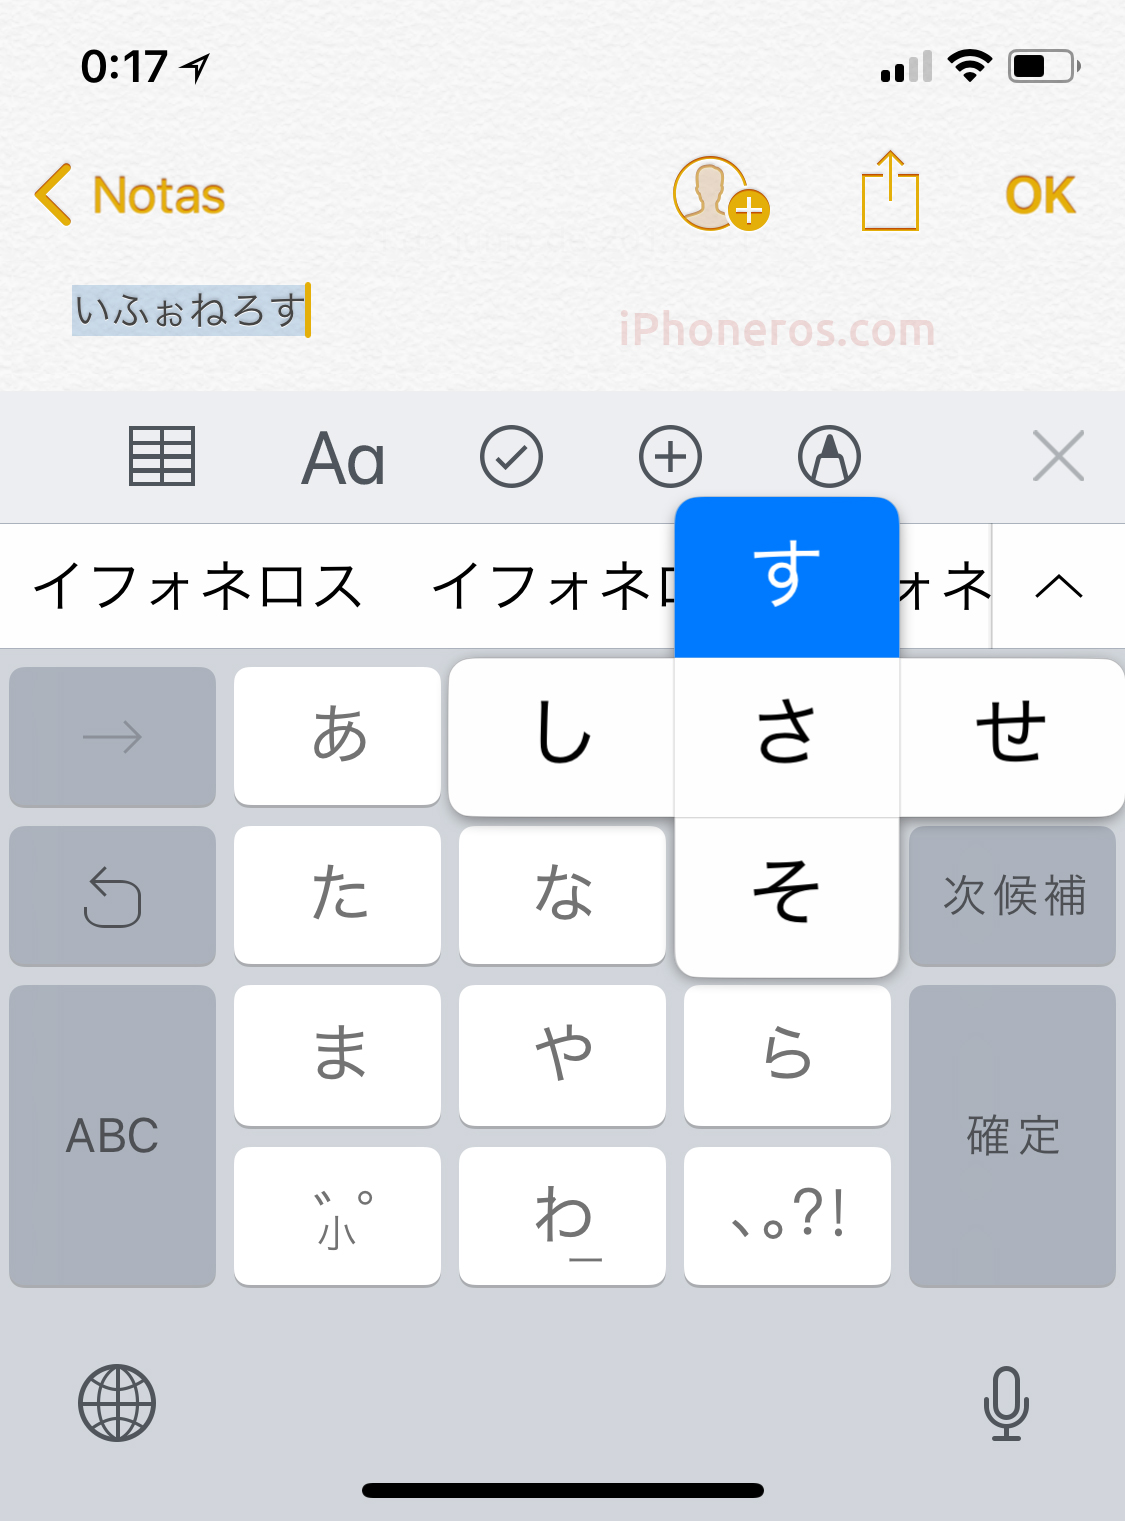 Teclado virtual japonés de iOS